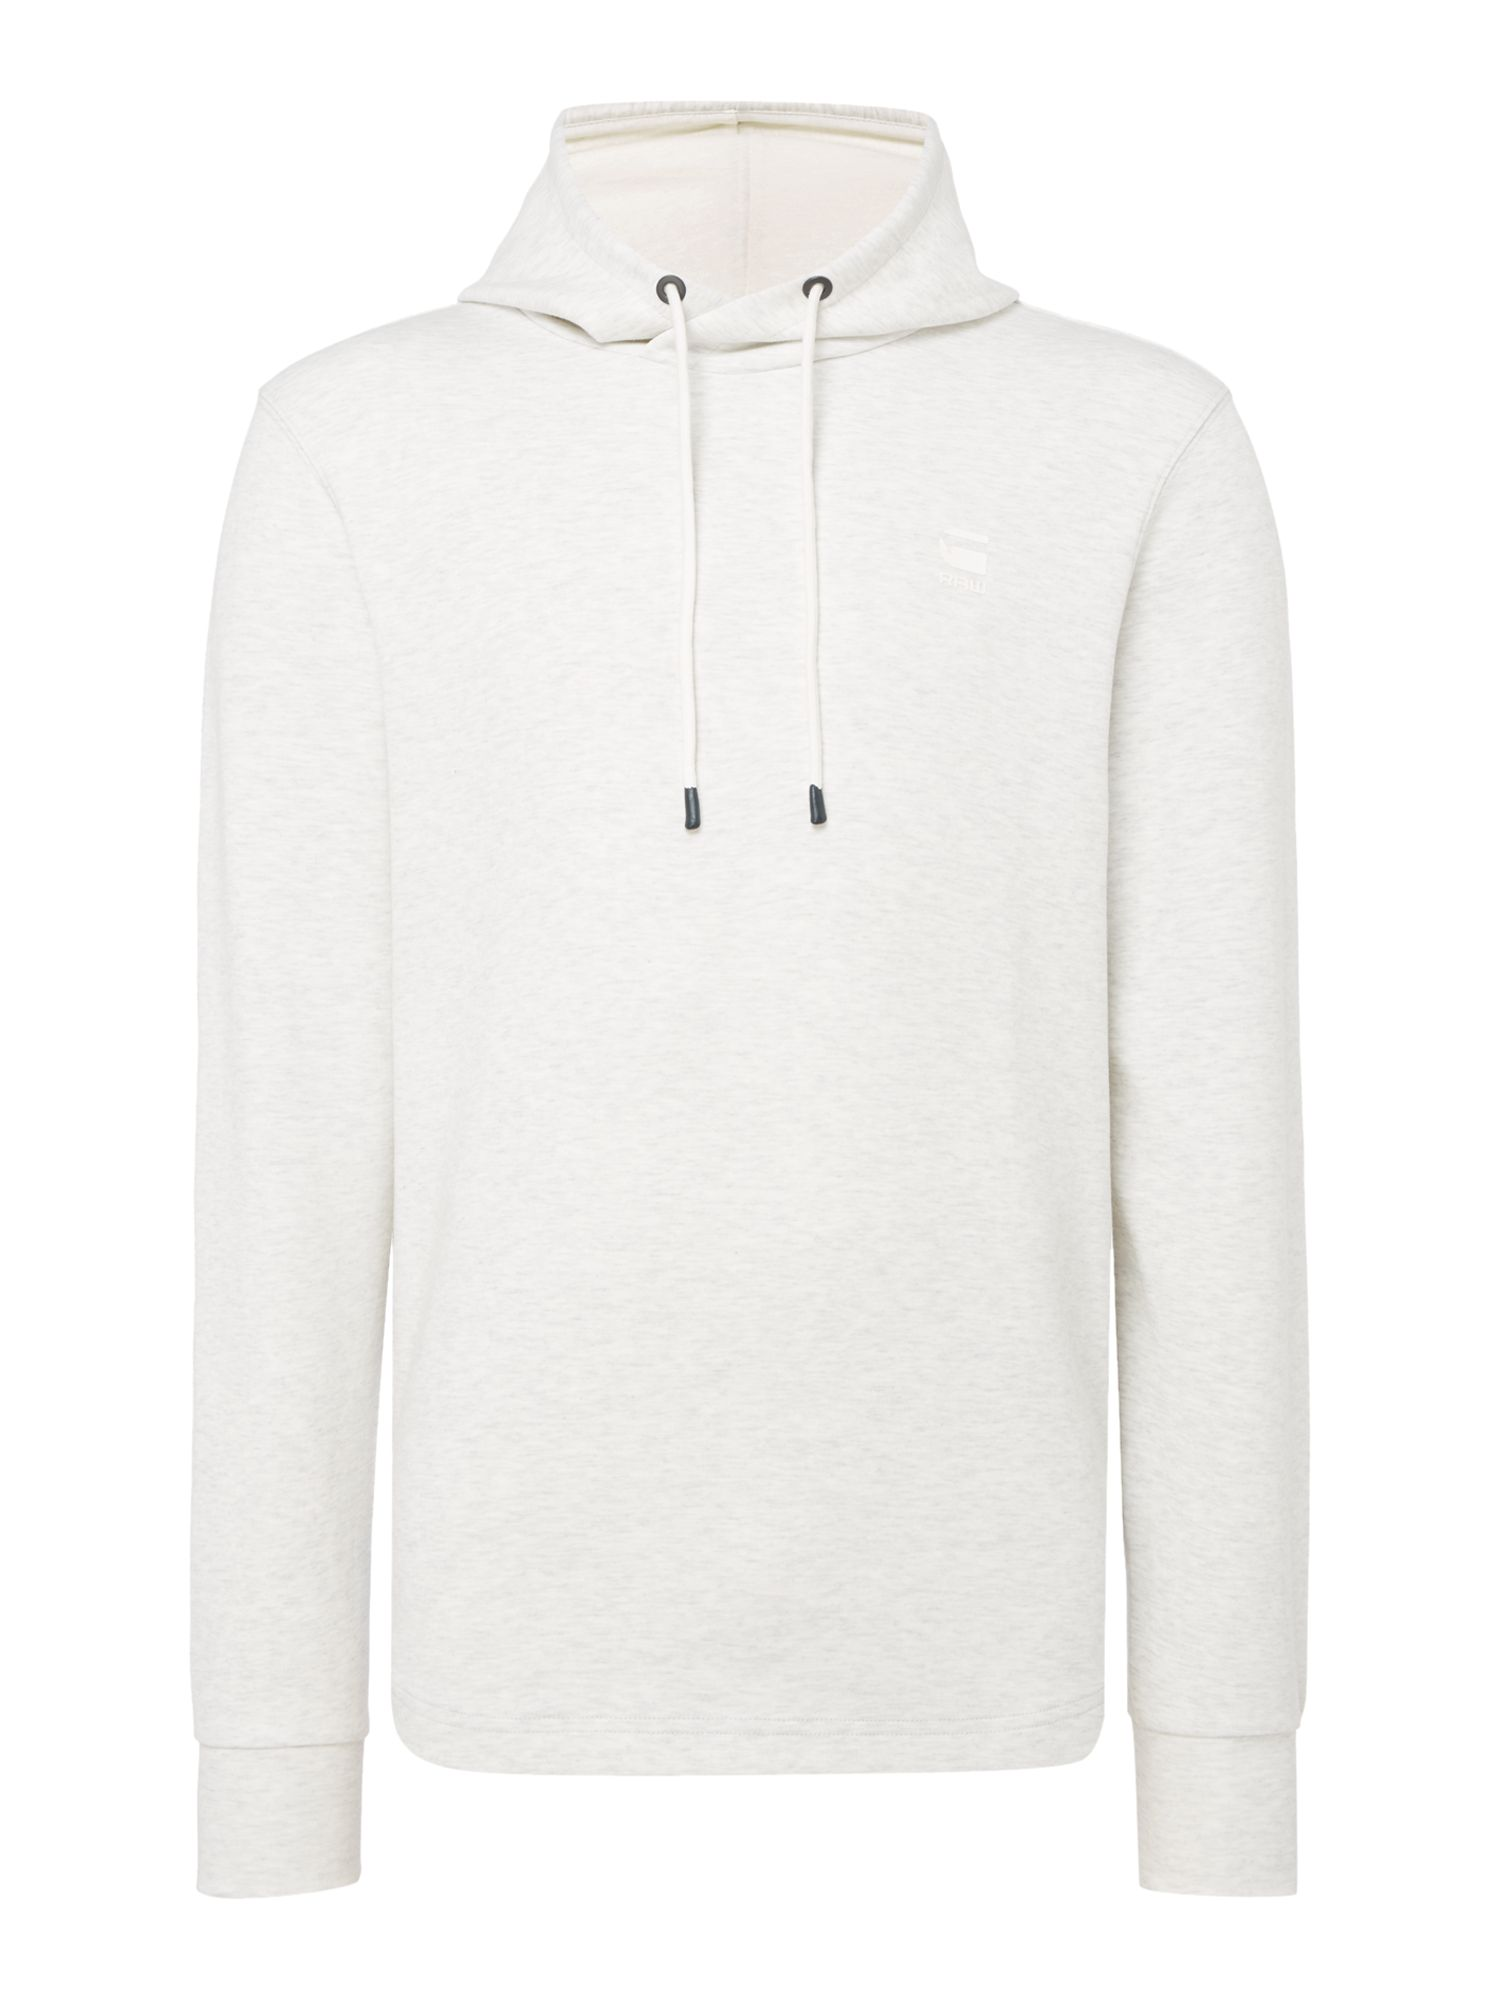 Men's G-Star Calow Zip Hooded Sweatshirt, Off White